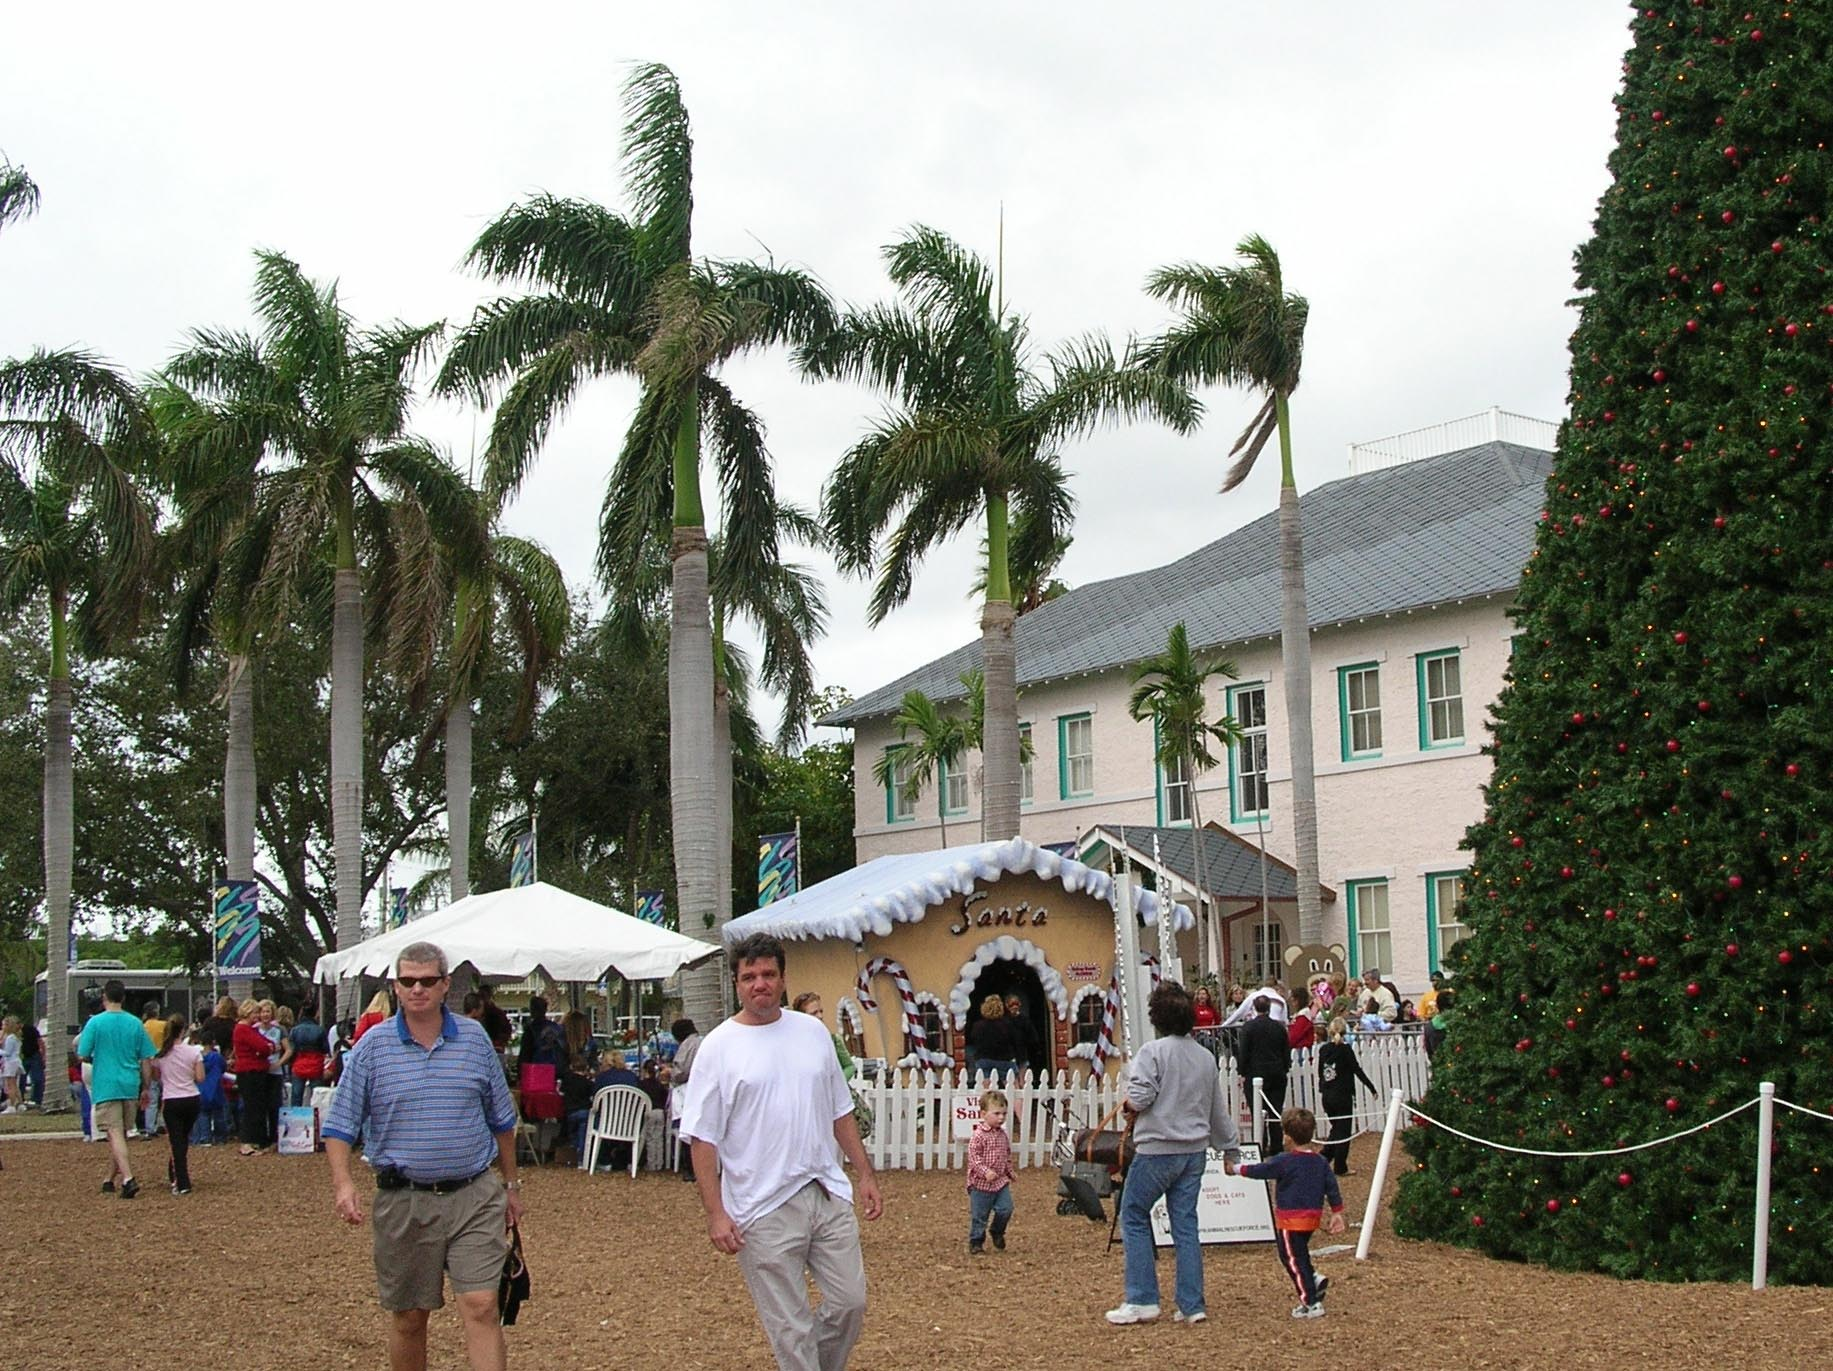 A holiday event at the The Cornell Museum of Art and American Culture, housed in the restored 1913 Delray Elementary School building.